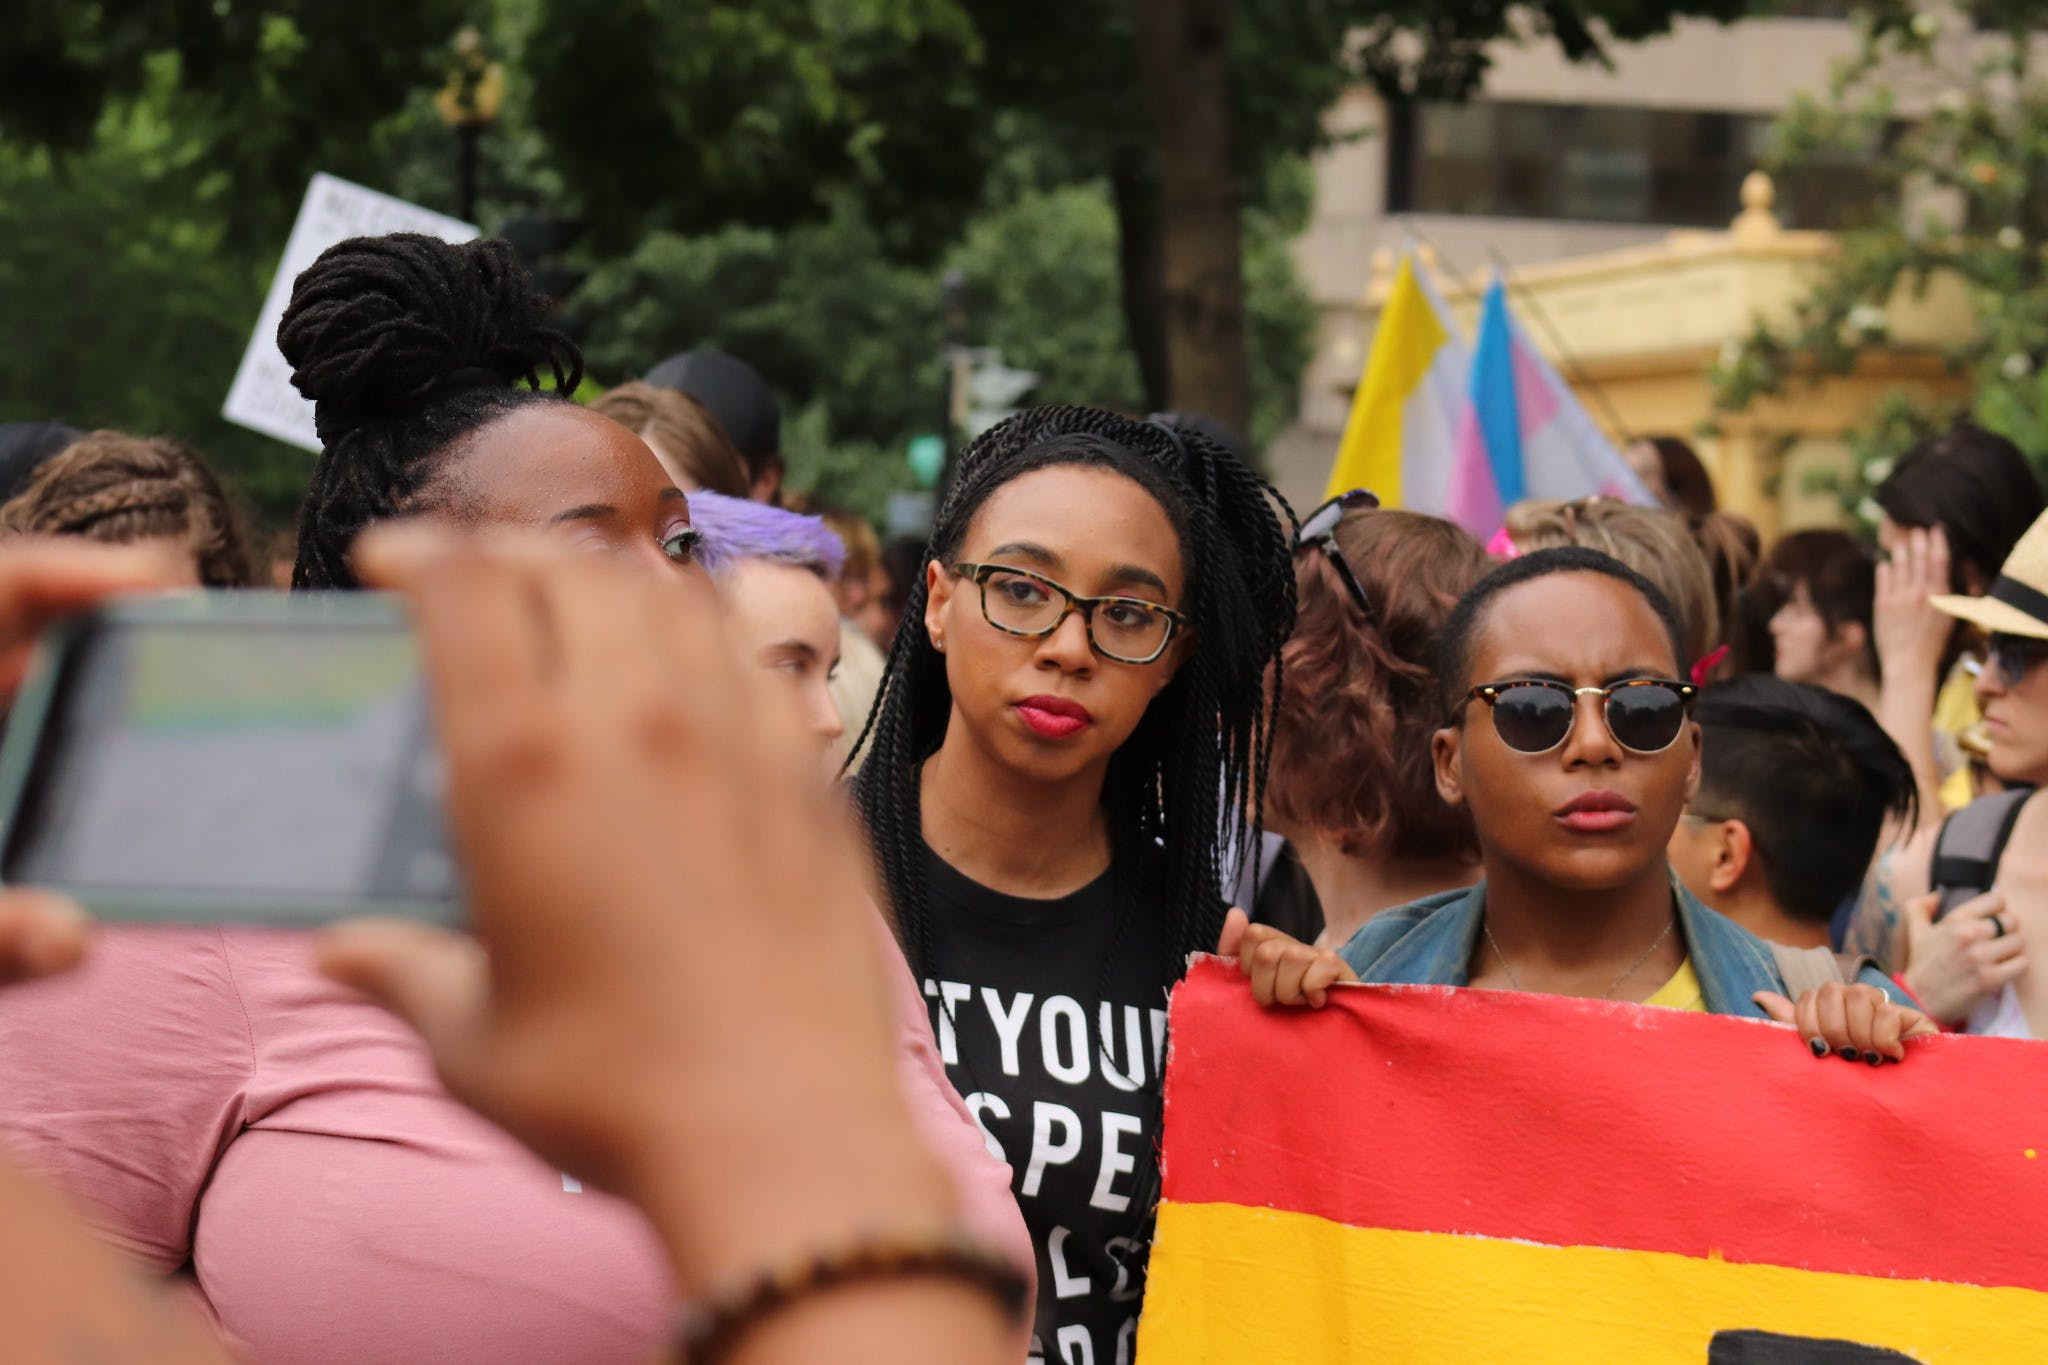 A group of Black queer people marching during an LGBTQ event. Public sex is an important part of the queer community's legacy.